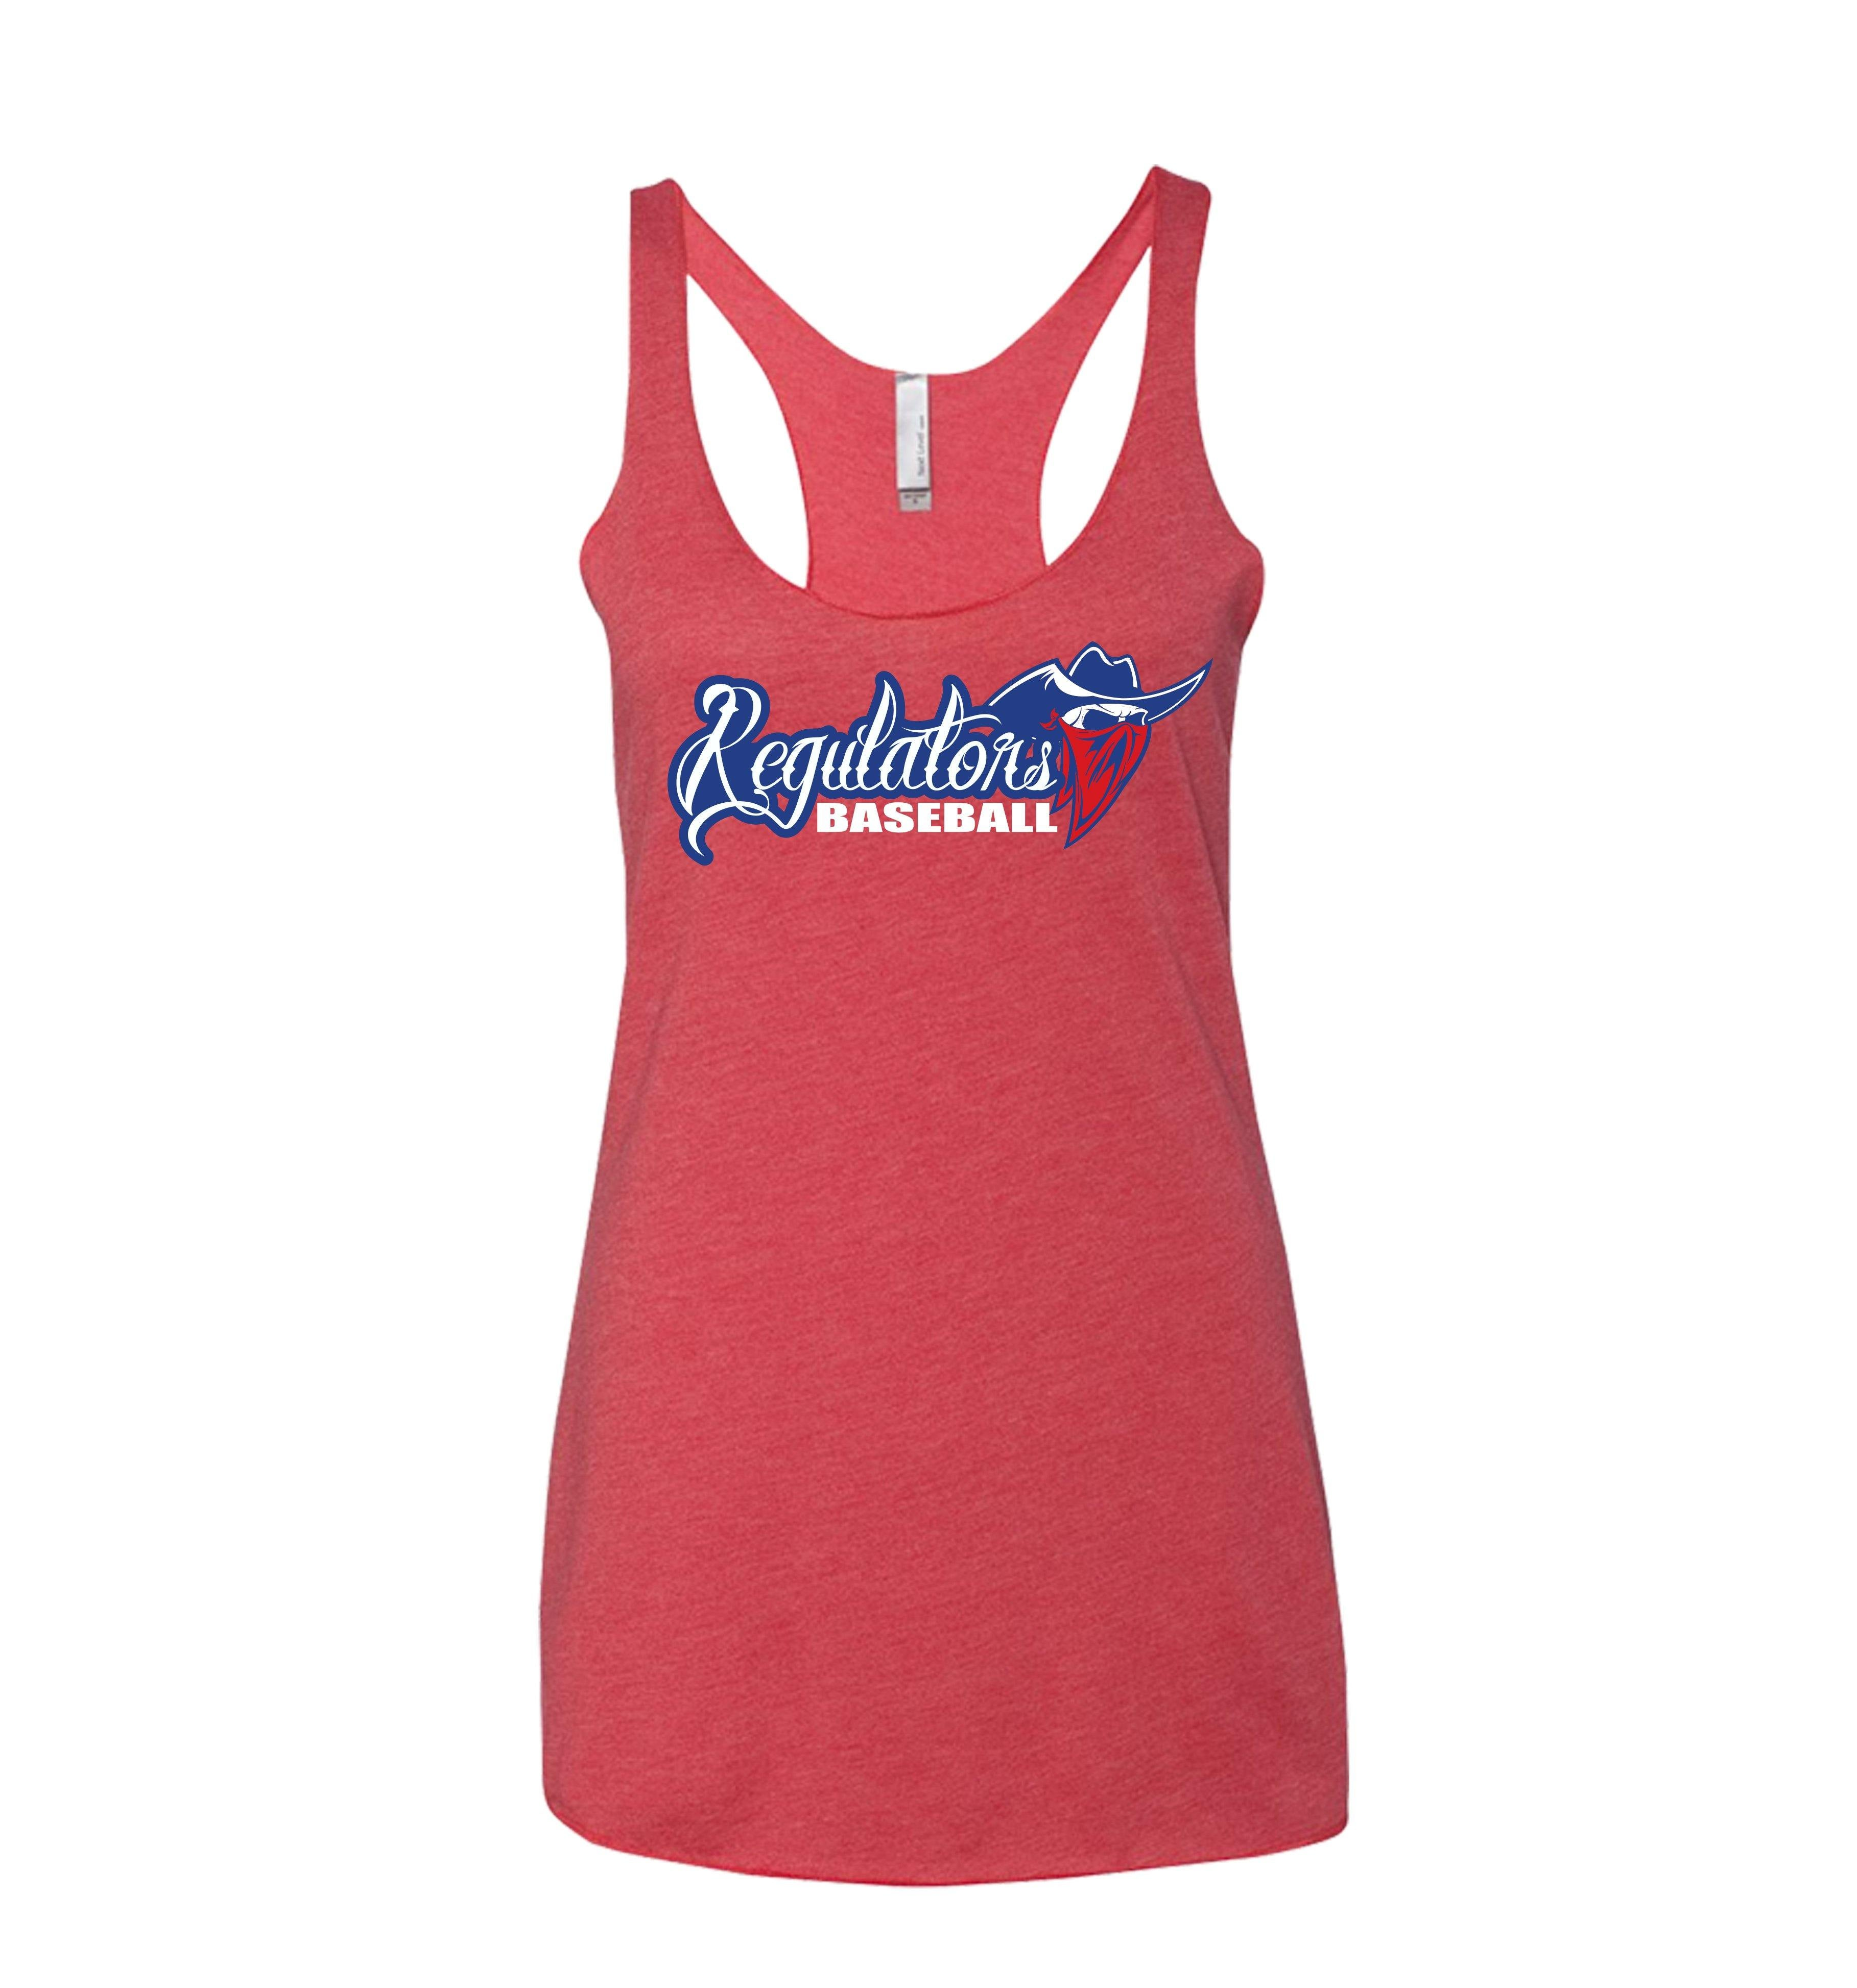 Regulators Baseball: Red, White and Blue Racerback - Shops by Green Gorilla